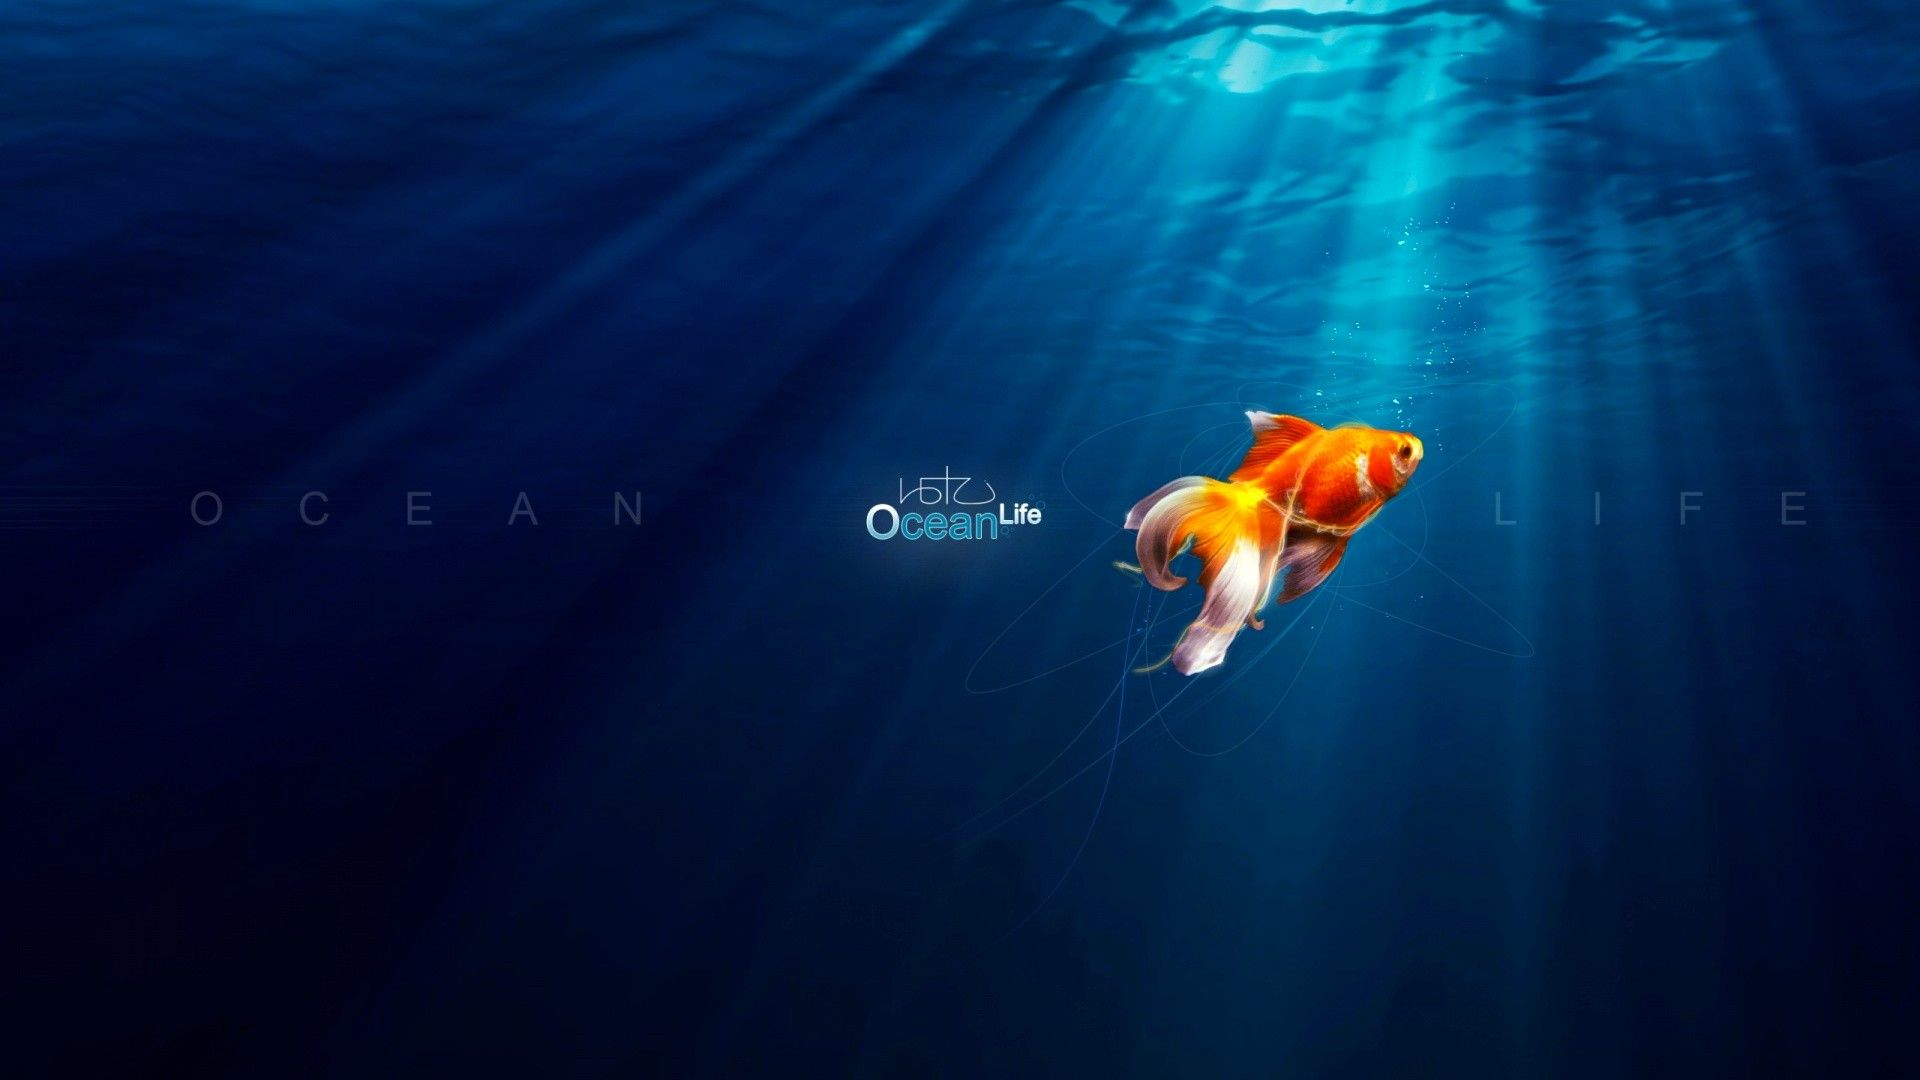 The Goldfish Pictures In The Ocean